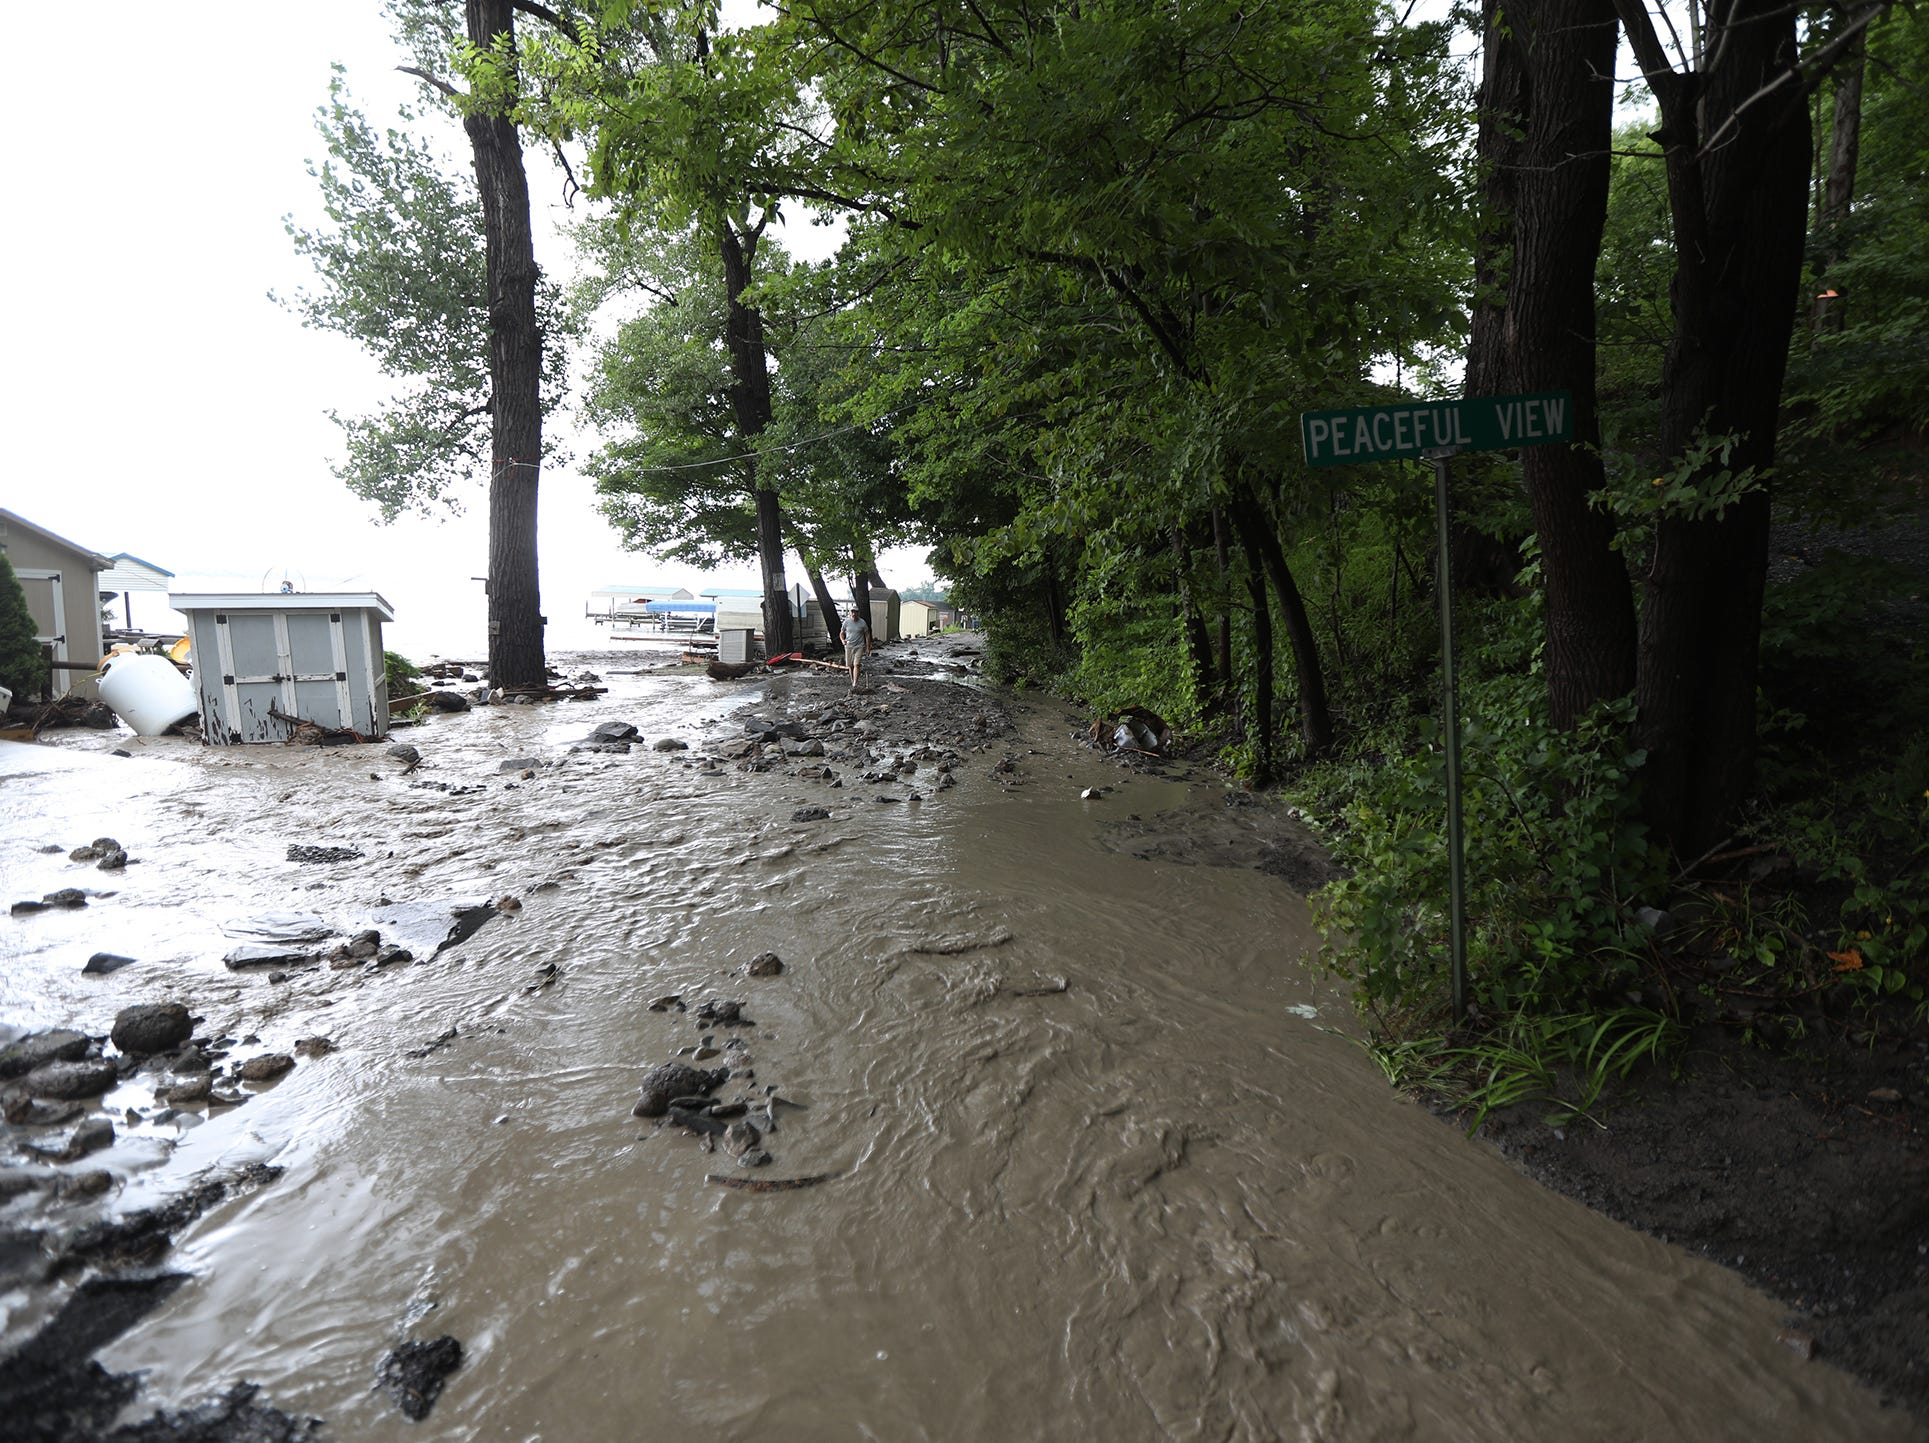 Several portions of Lower Lake Road in Lodi were washed away after heavy rain caused flooding and washing away at Lodi Point, New York on Tuesday, August 14, 2018.